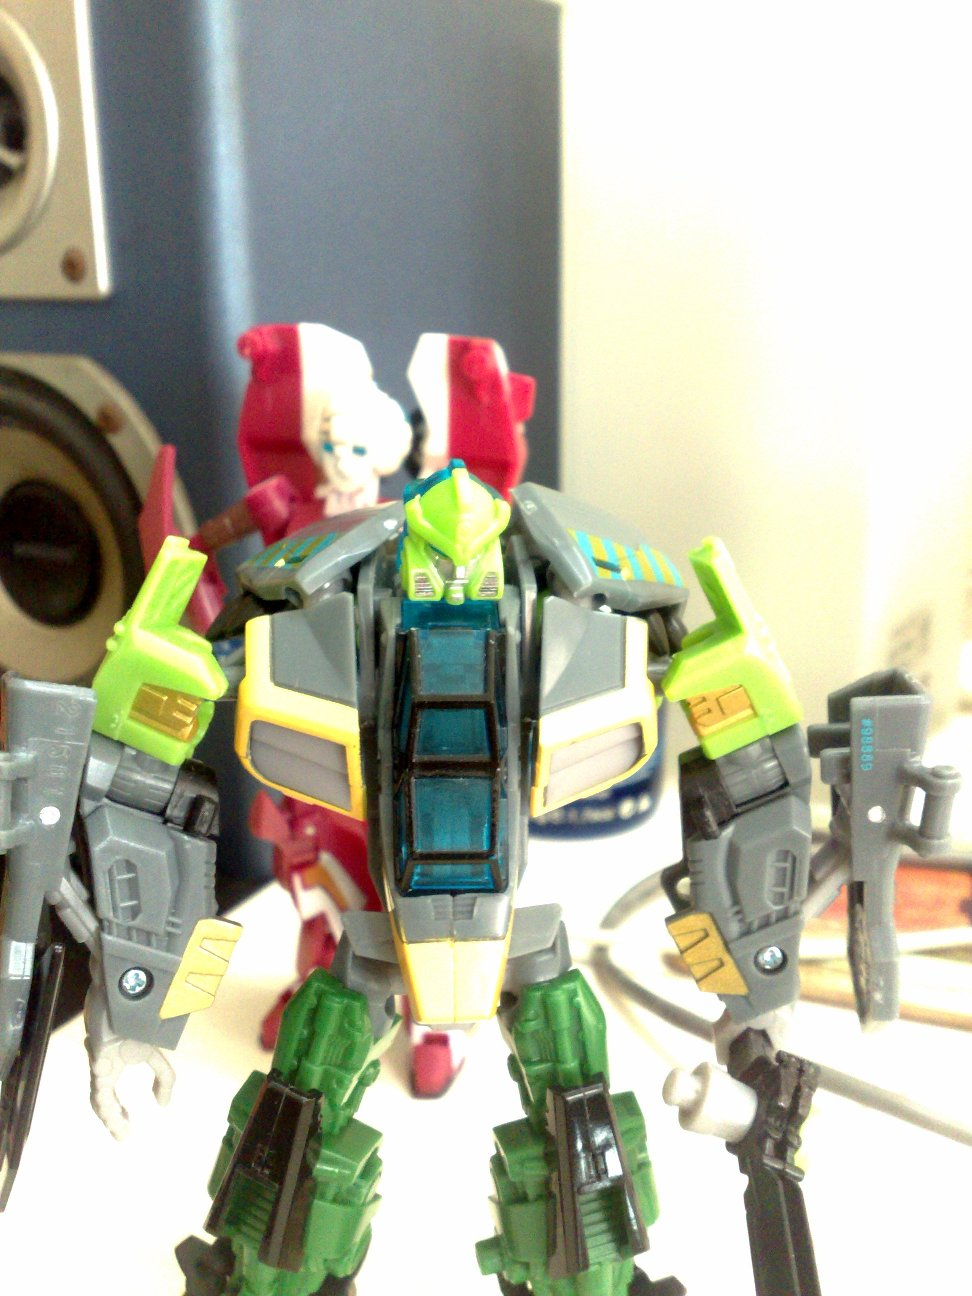 hah finally I got my asia exclusize generation Springer!-12506_7dbd1343532823927e325d2f069ab.jpg